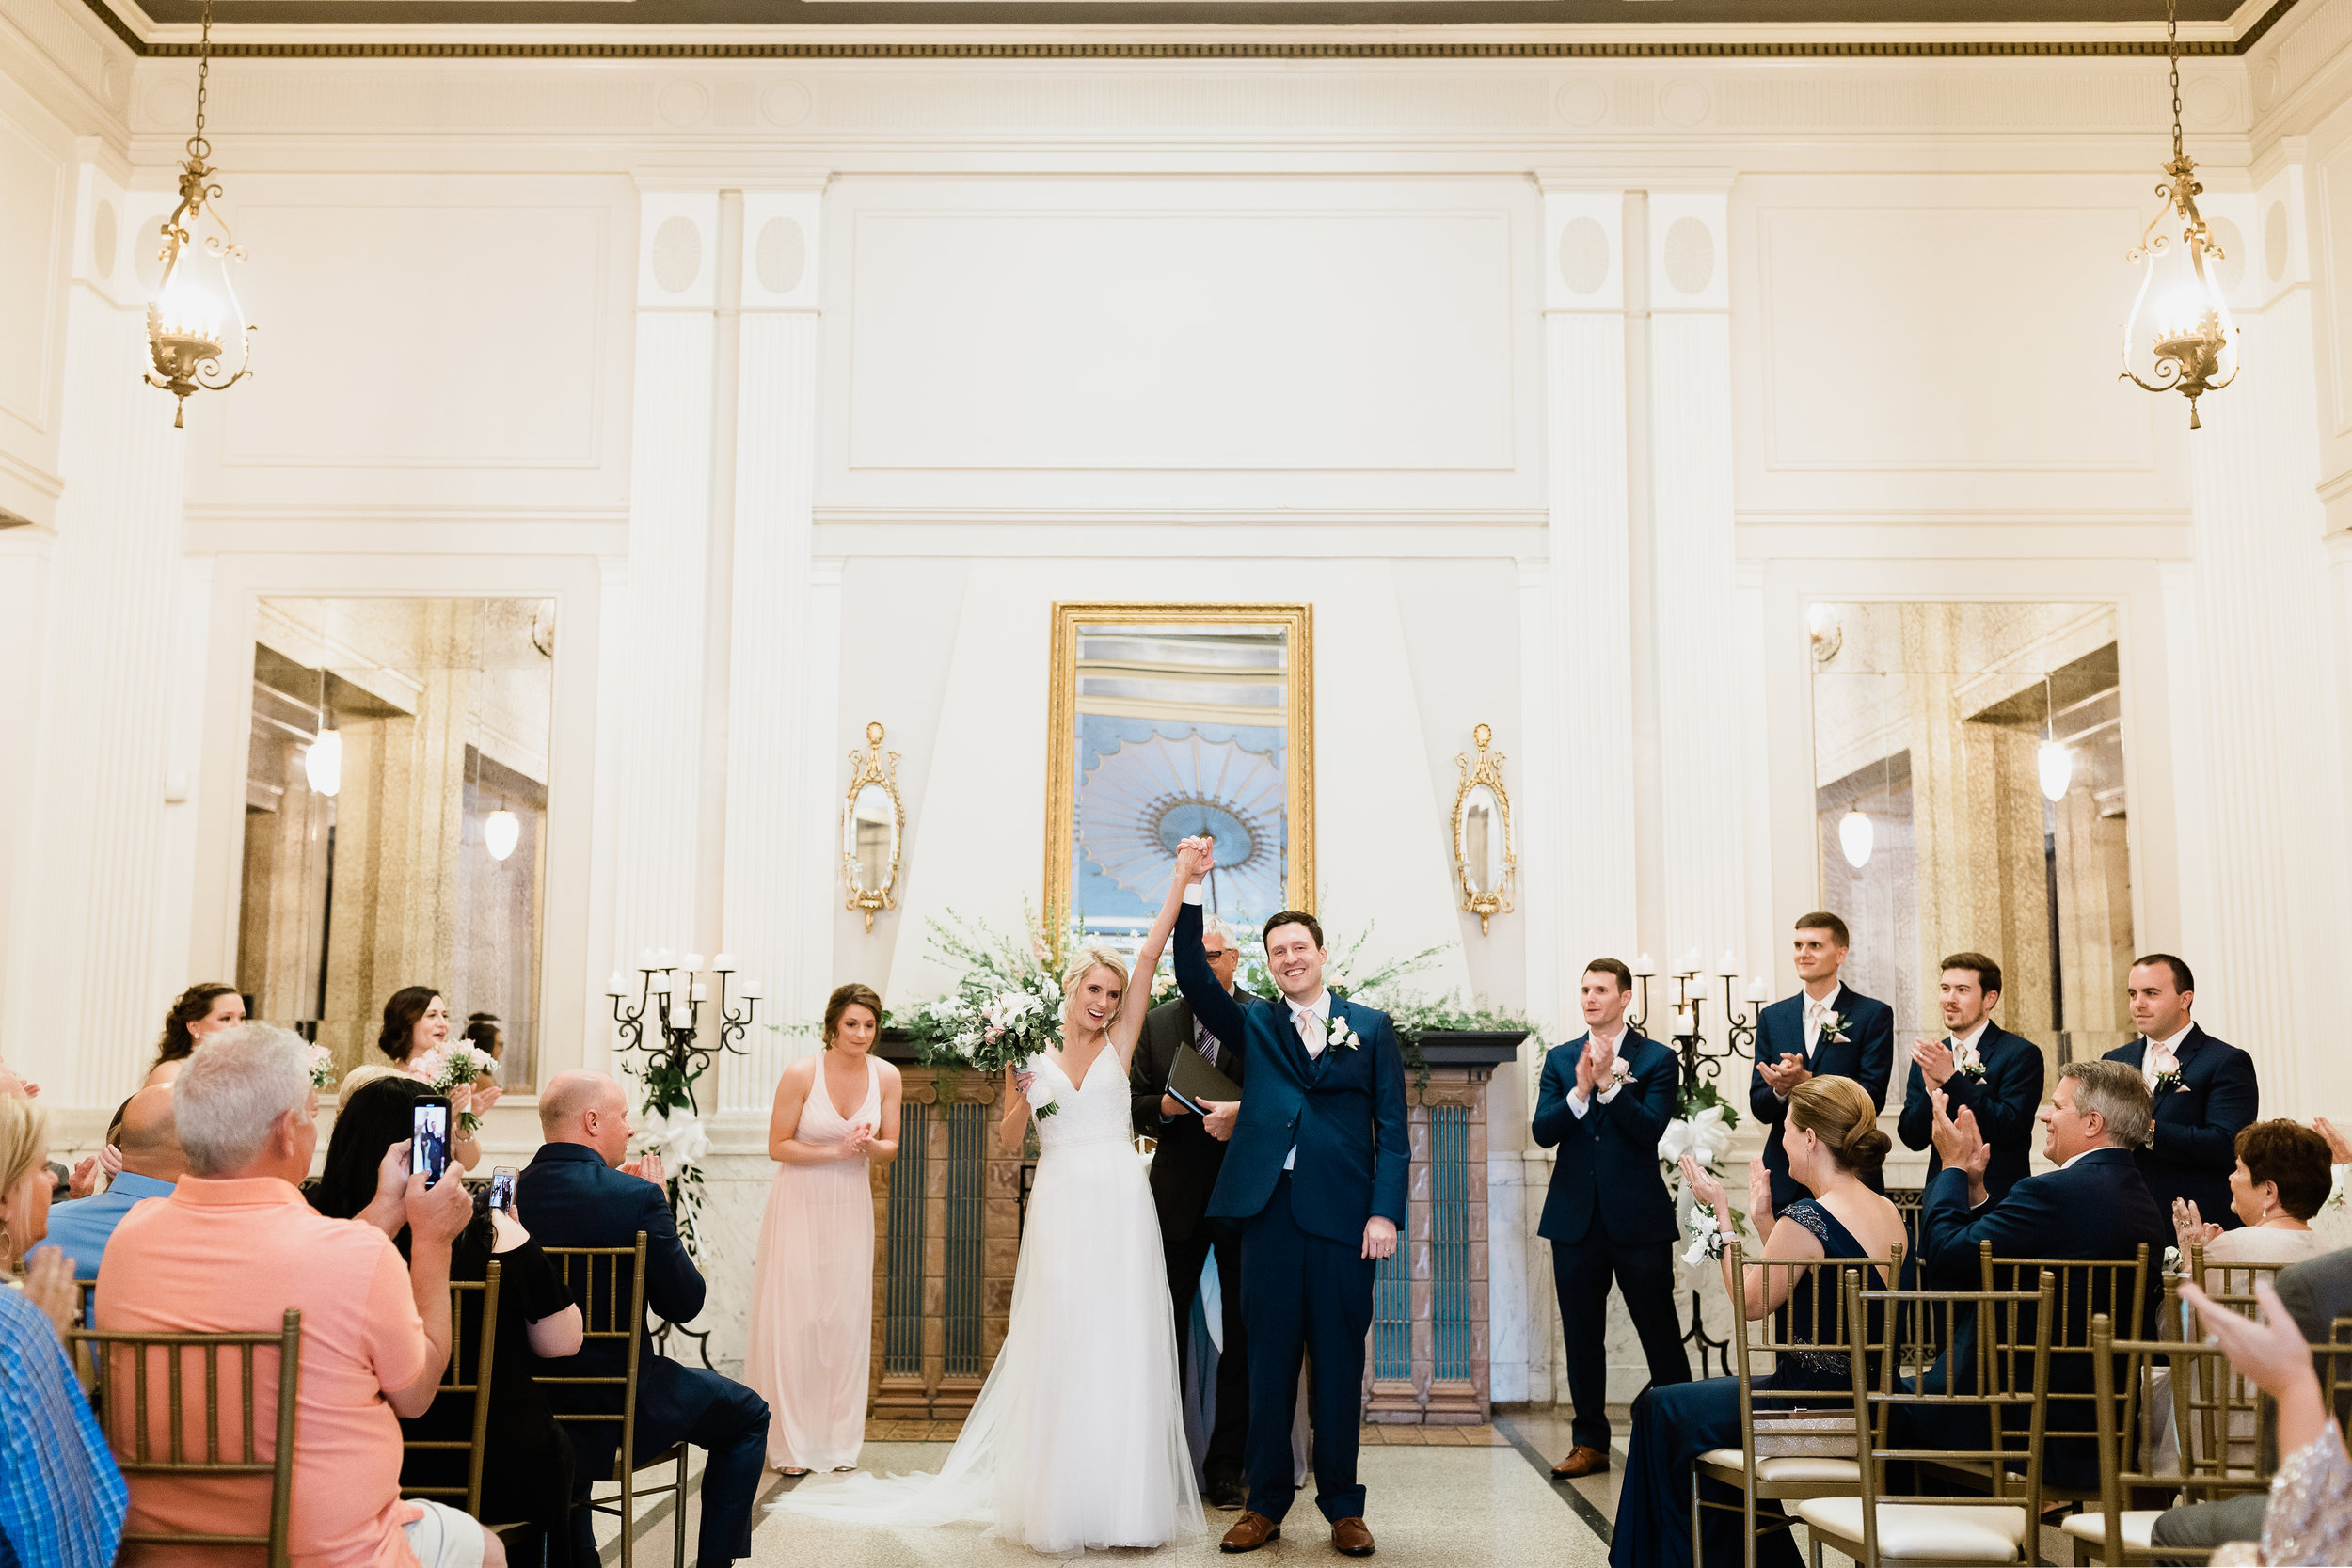 Sydney + Hunter - Ceremony-84.jpg